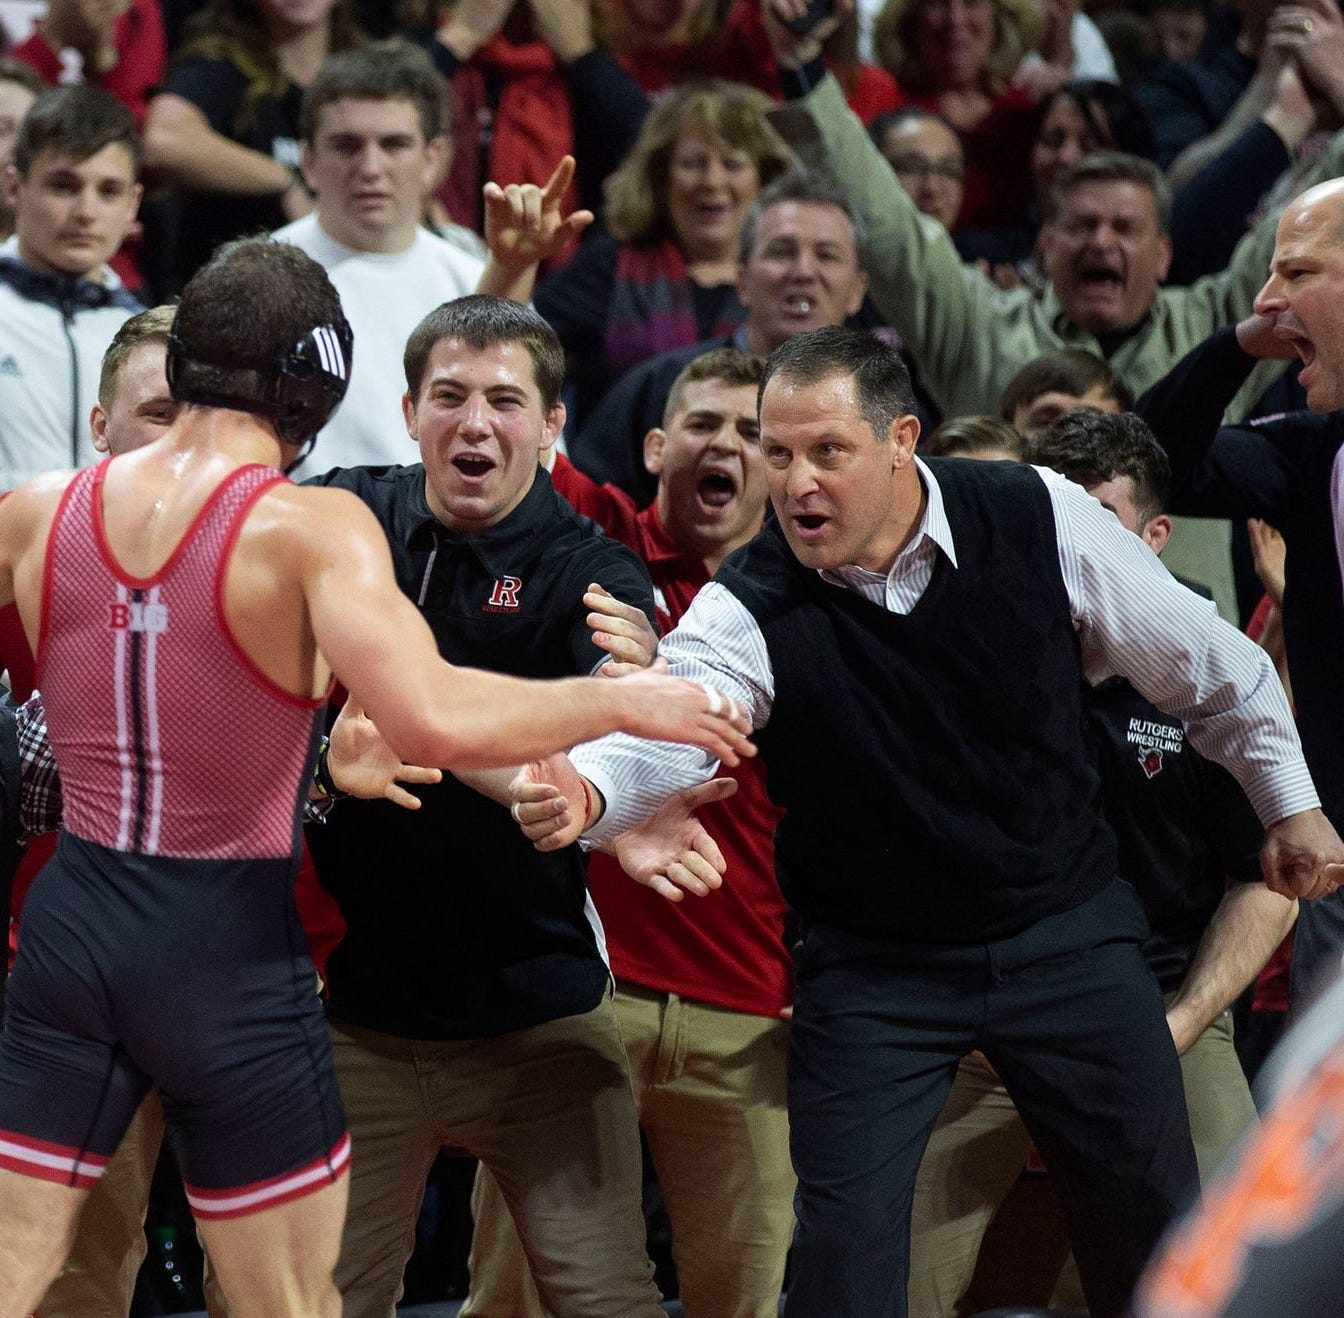 College Wrestling: Anthony Ashnault, Nick Suriano capture Big Ten  championships